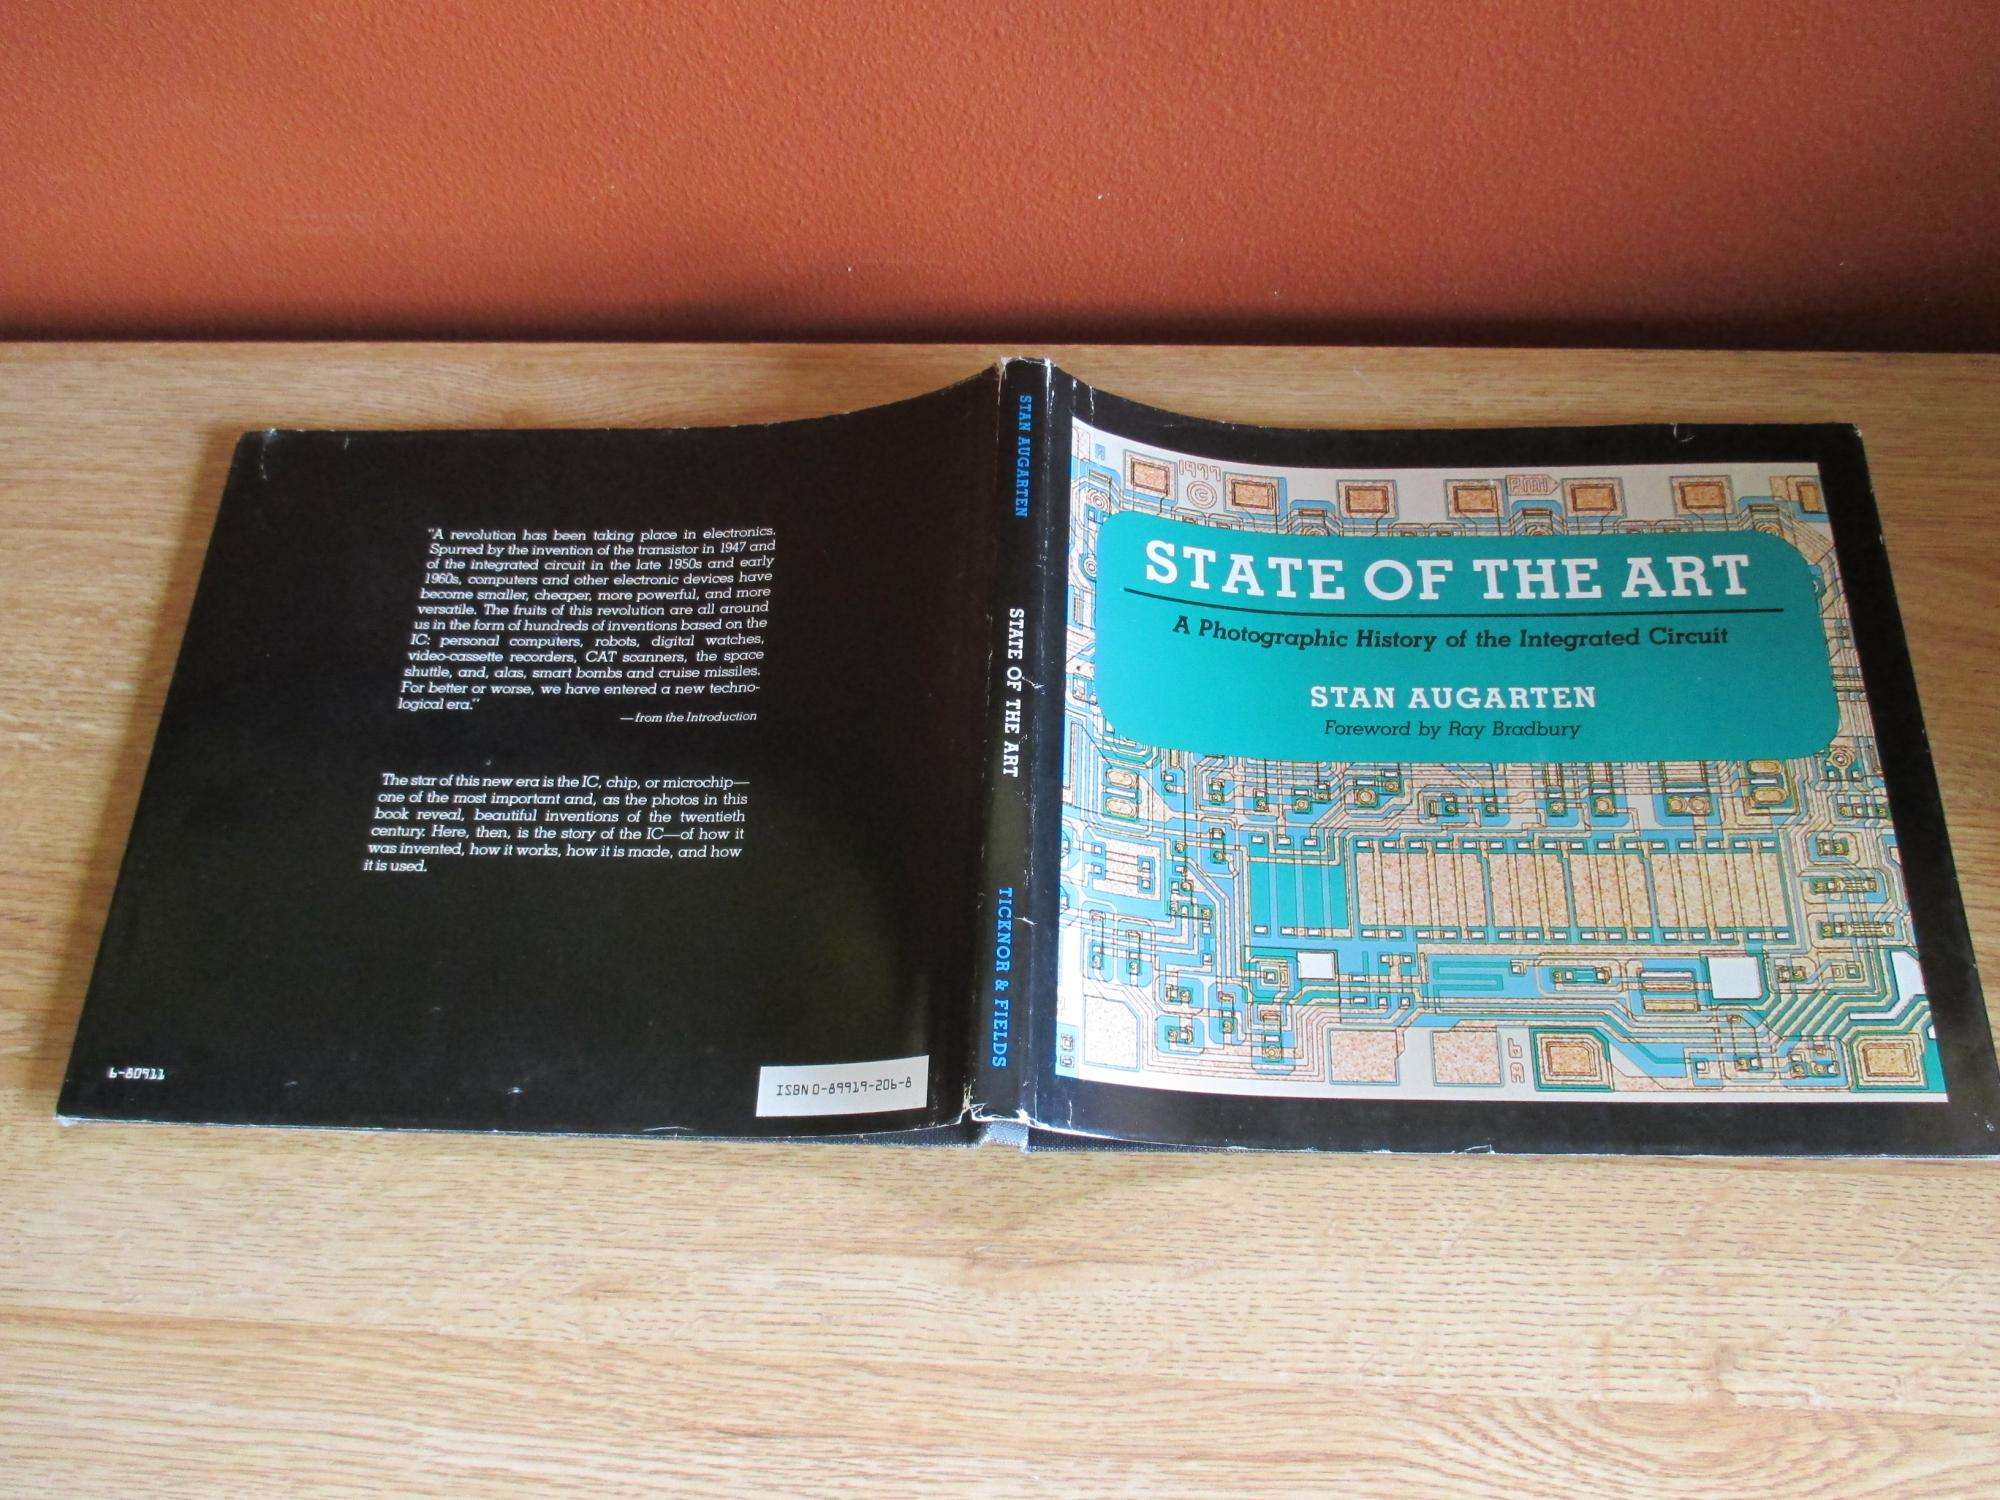 state of the art a photographic history of the integrated circuitstate of the art a photographic history of the integrated circuit stan augarten